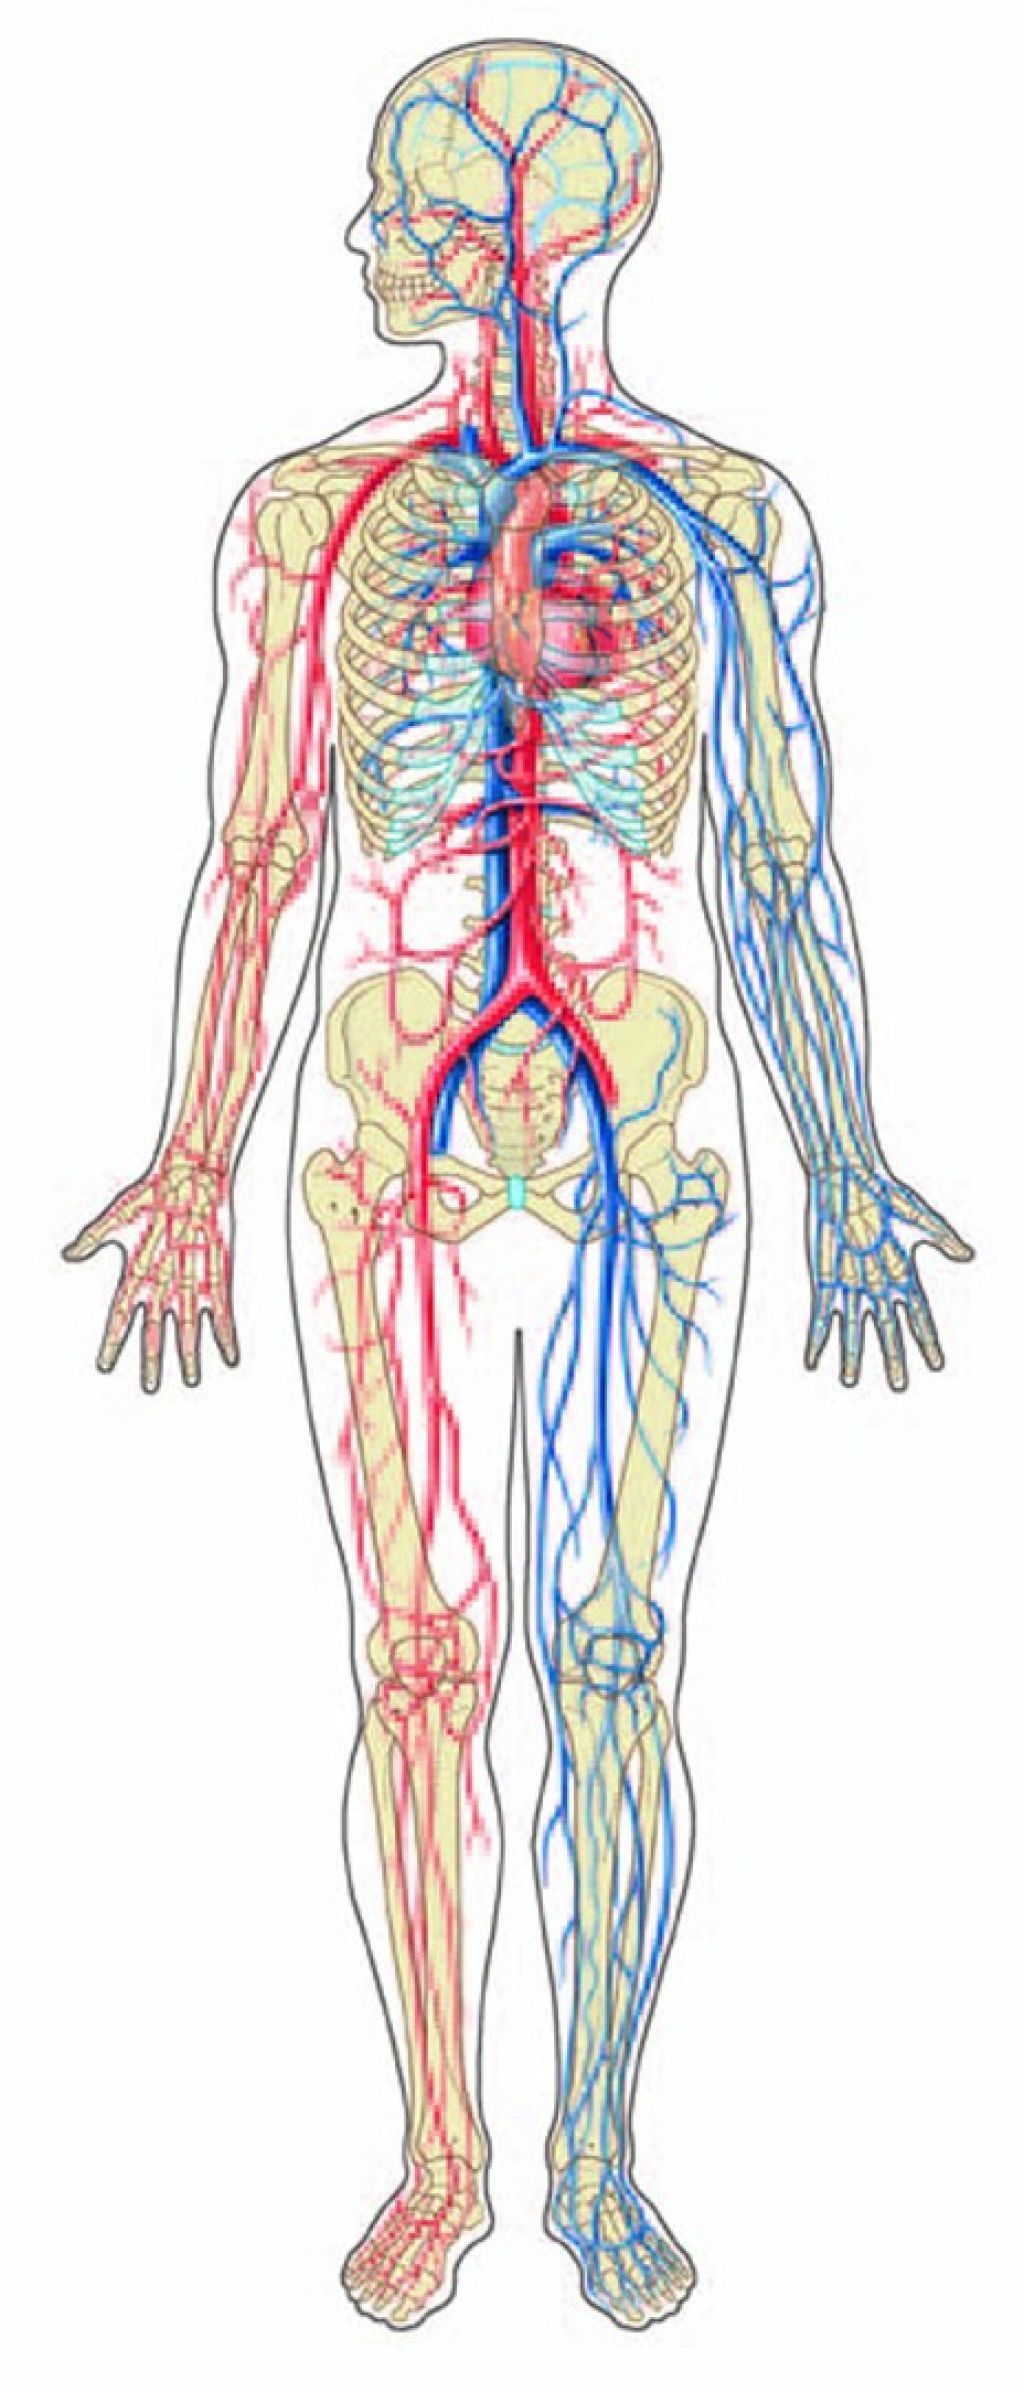 Anatomy clipart circulatory system png black and white library circulatory system diagram black and white - Google Search ... png black and white library